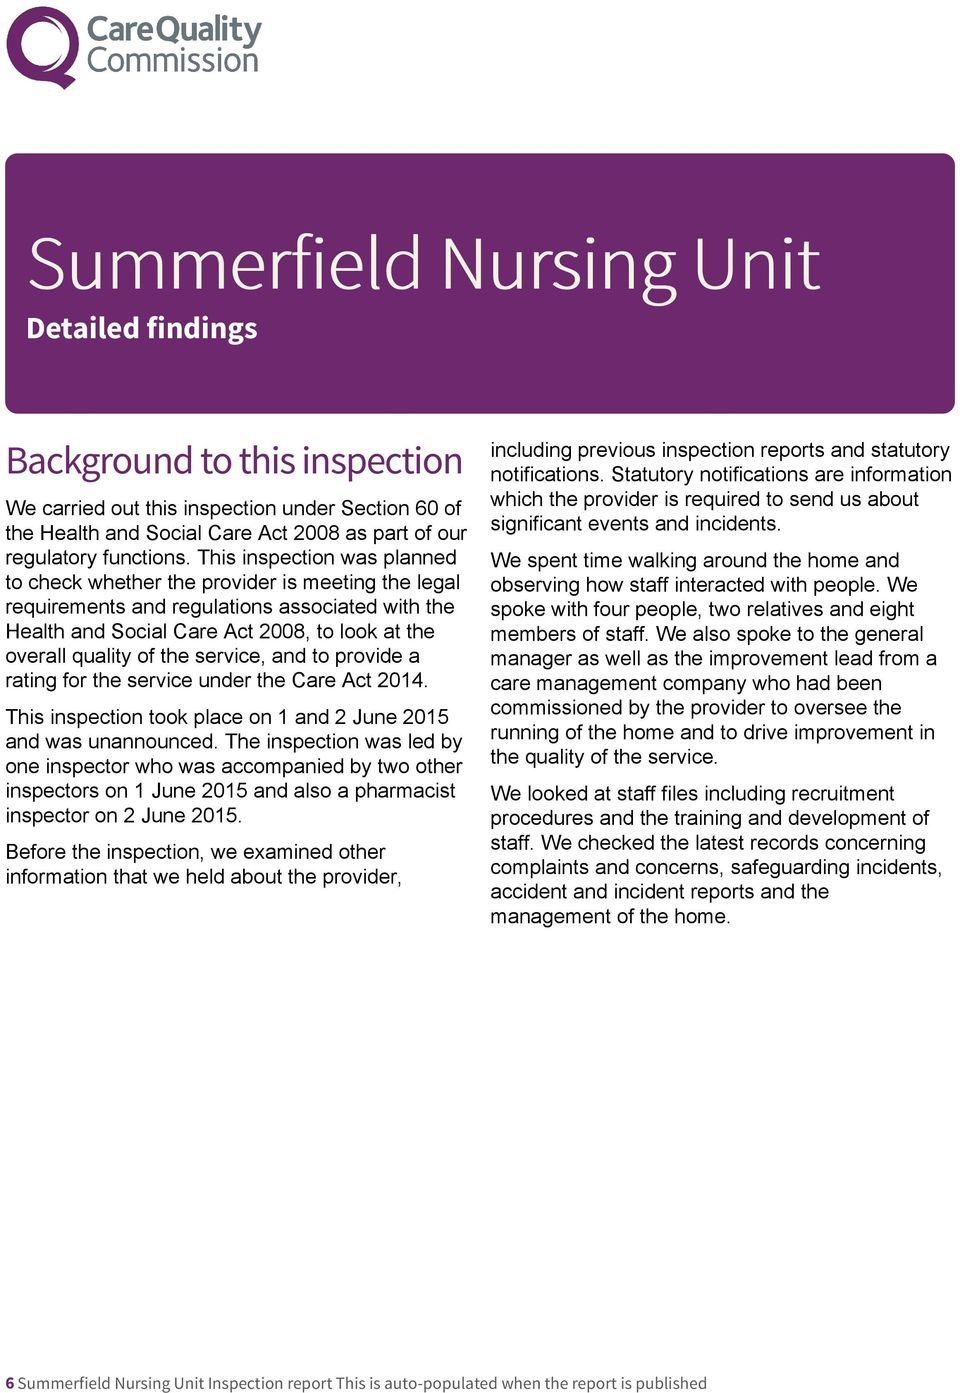 service, and to provide a rating for the service under the Care Act 2014. This inspection took place on 1 and 2 June 2015 and was unannounced.